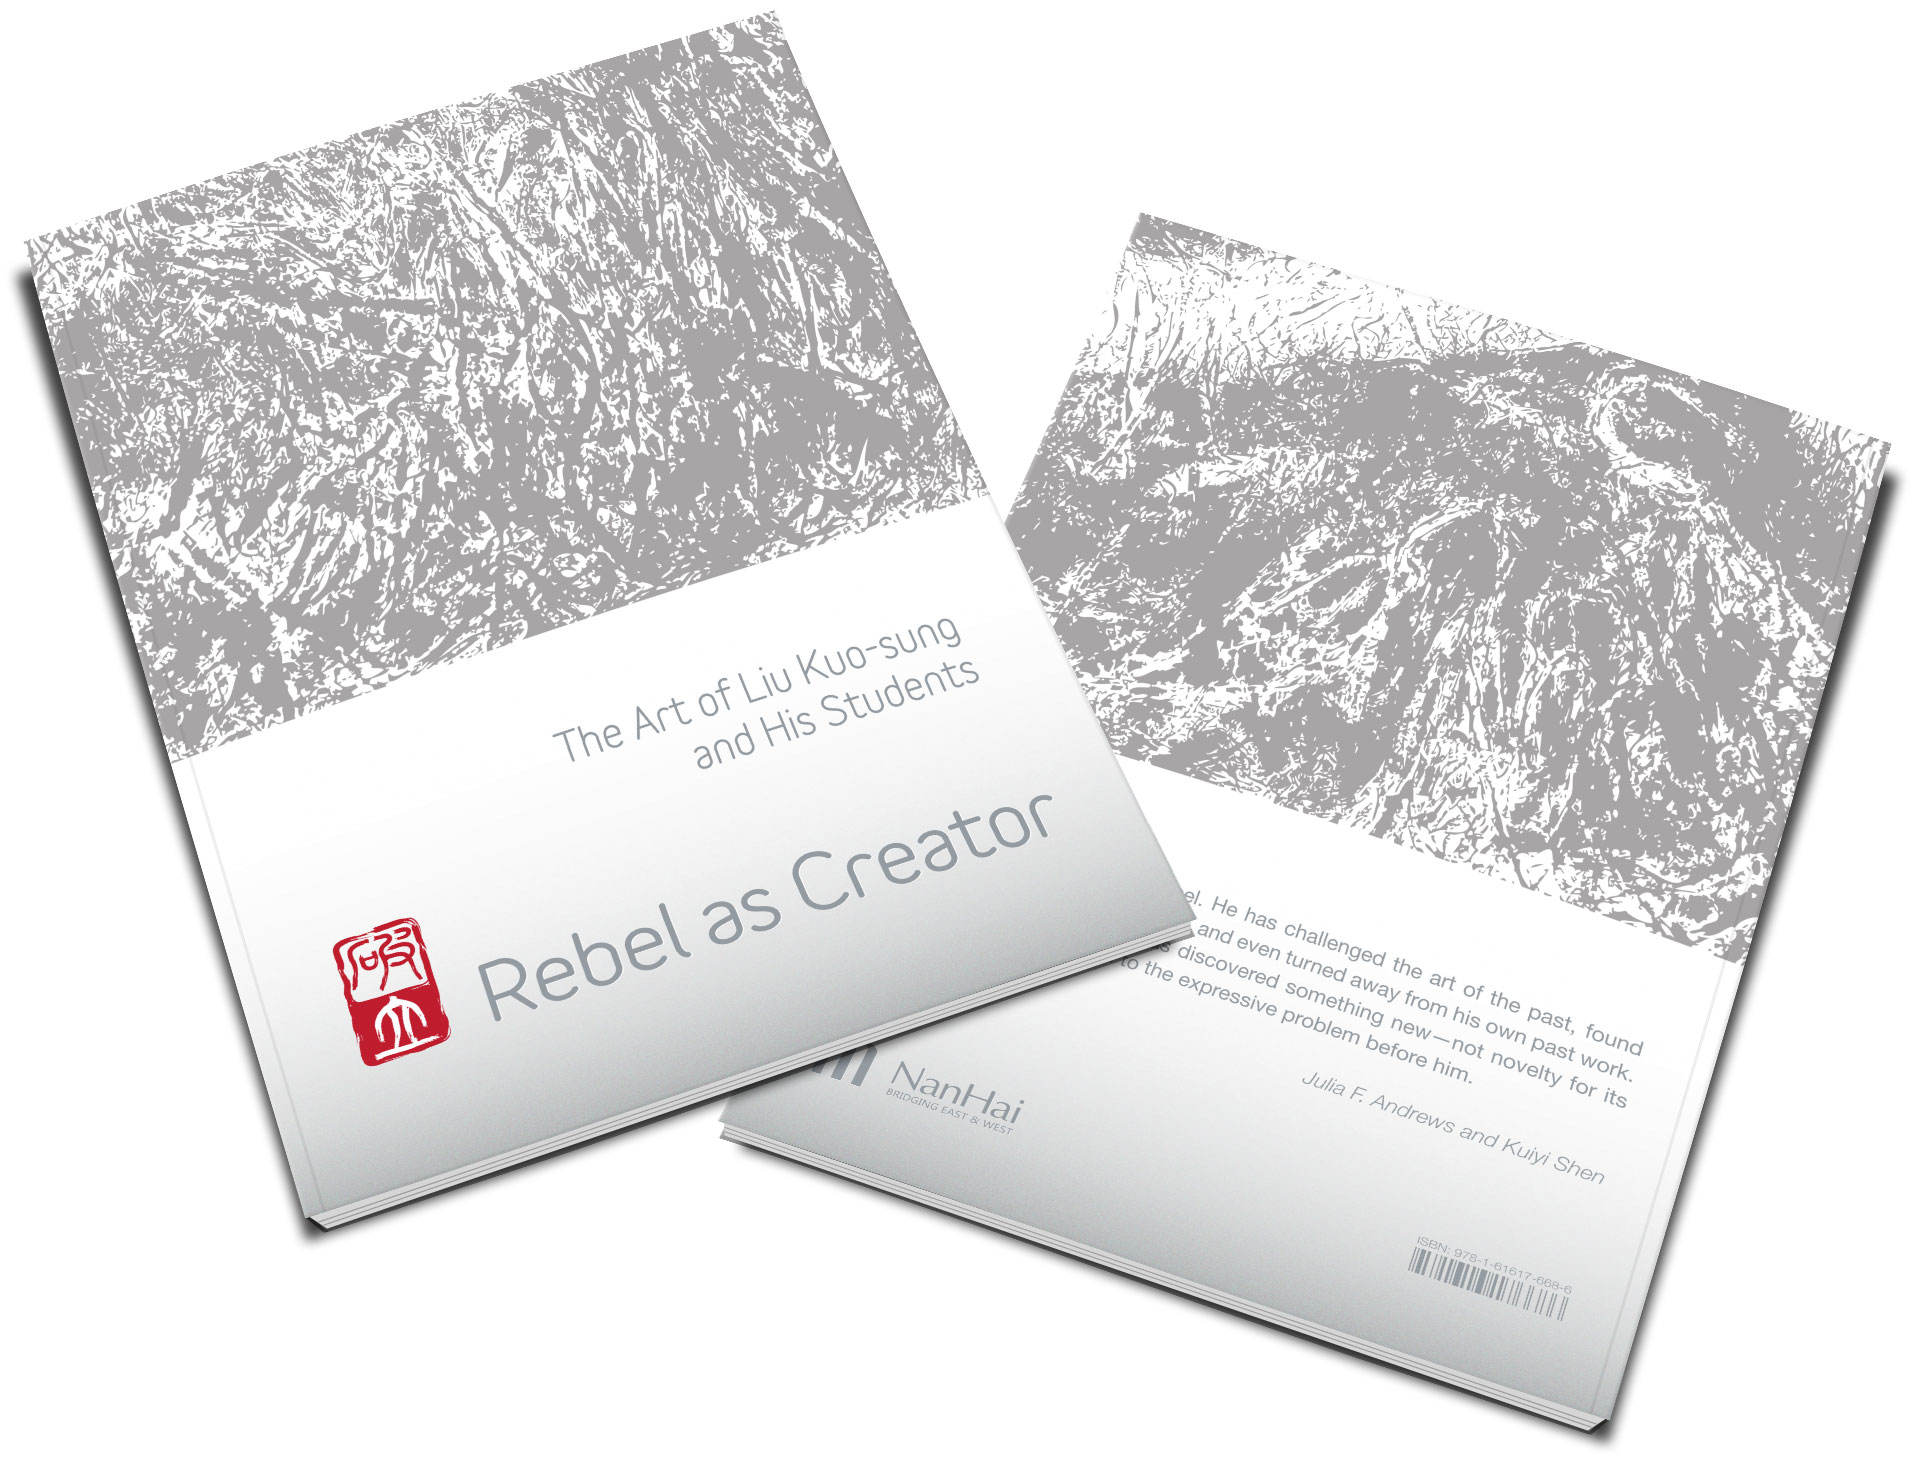 Nan Hai Art - Exhibition catalog design